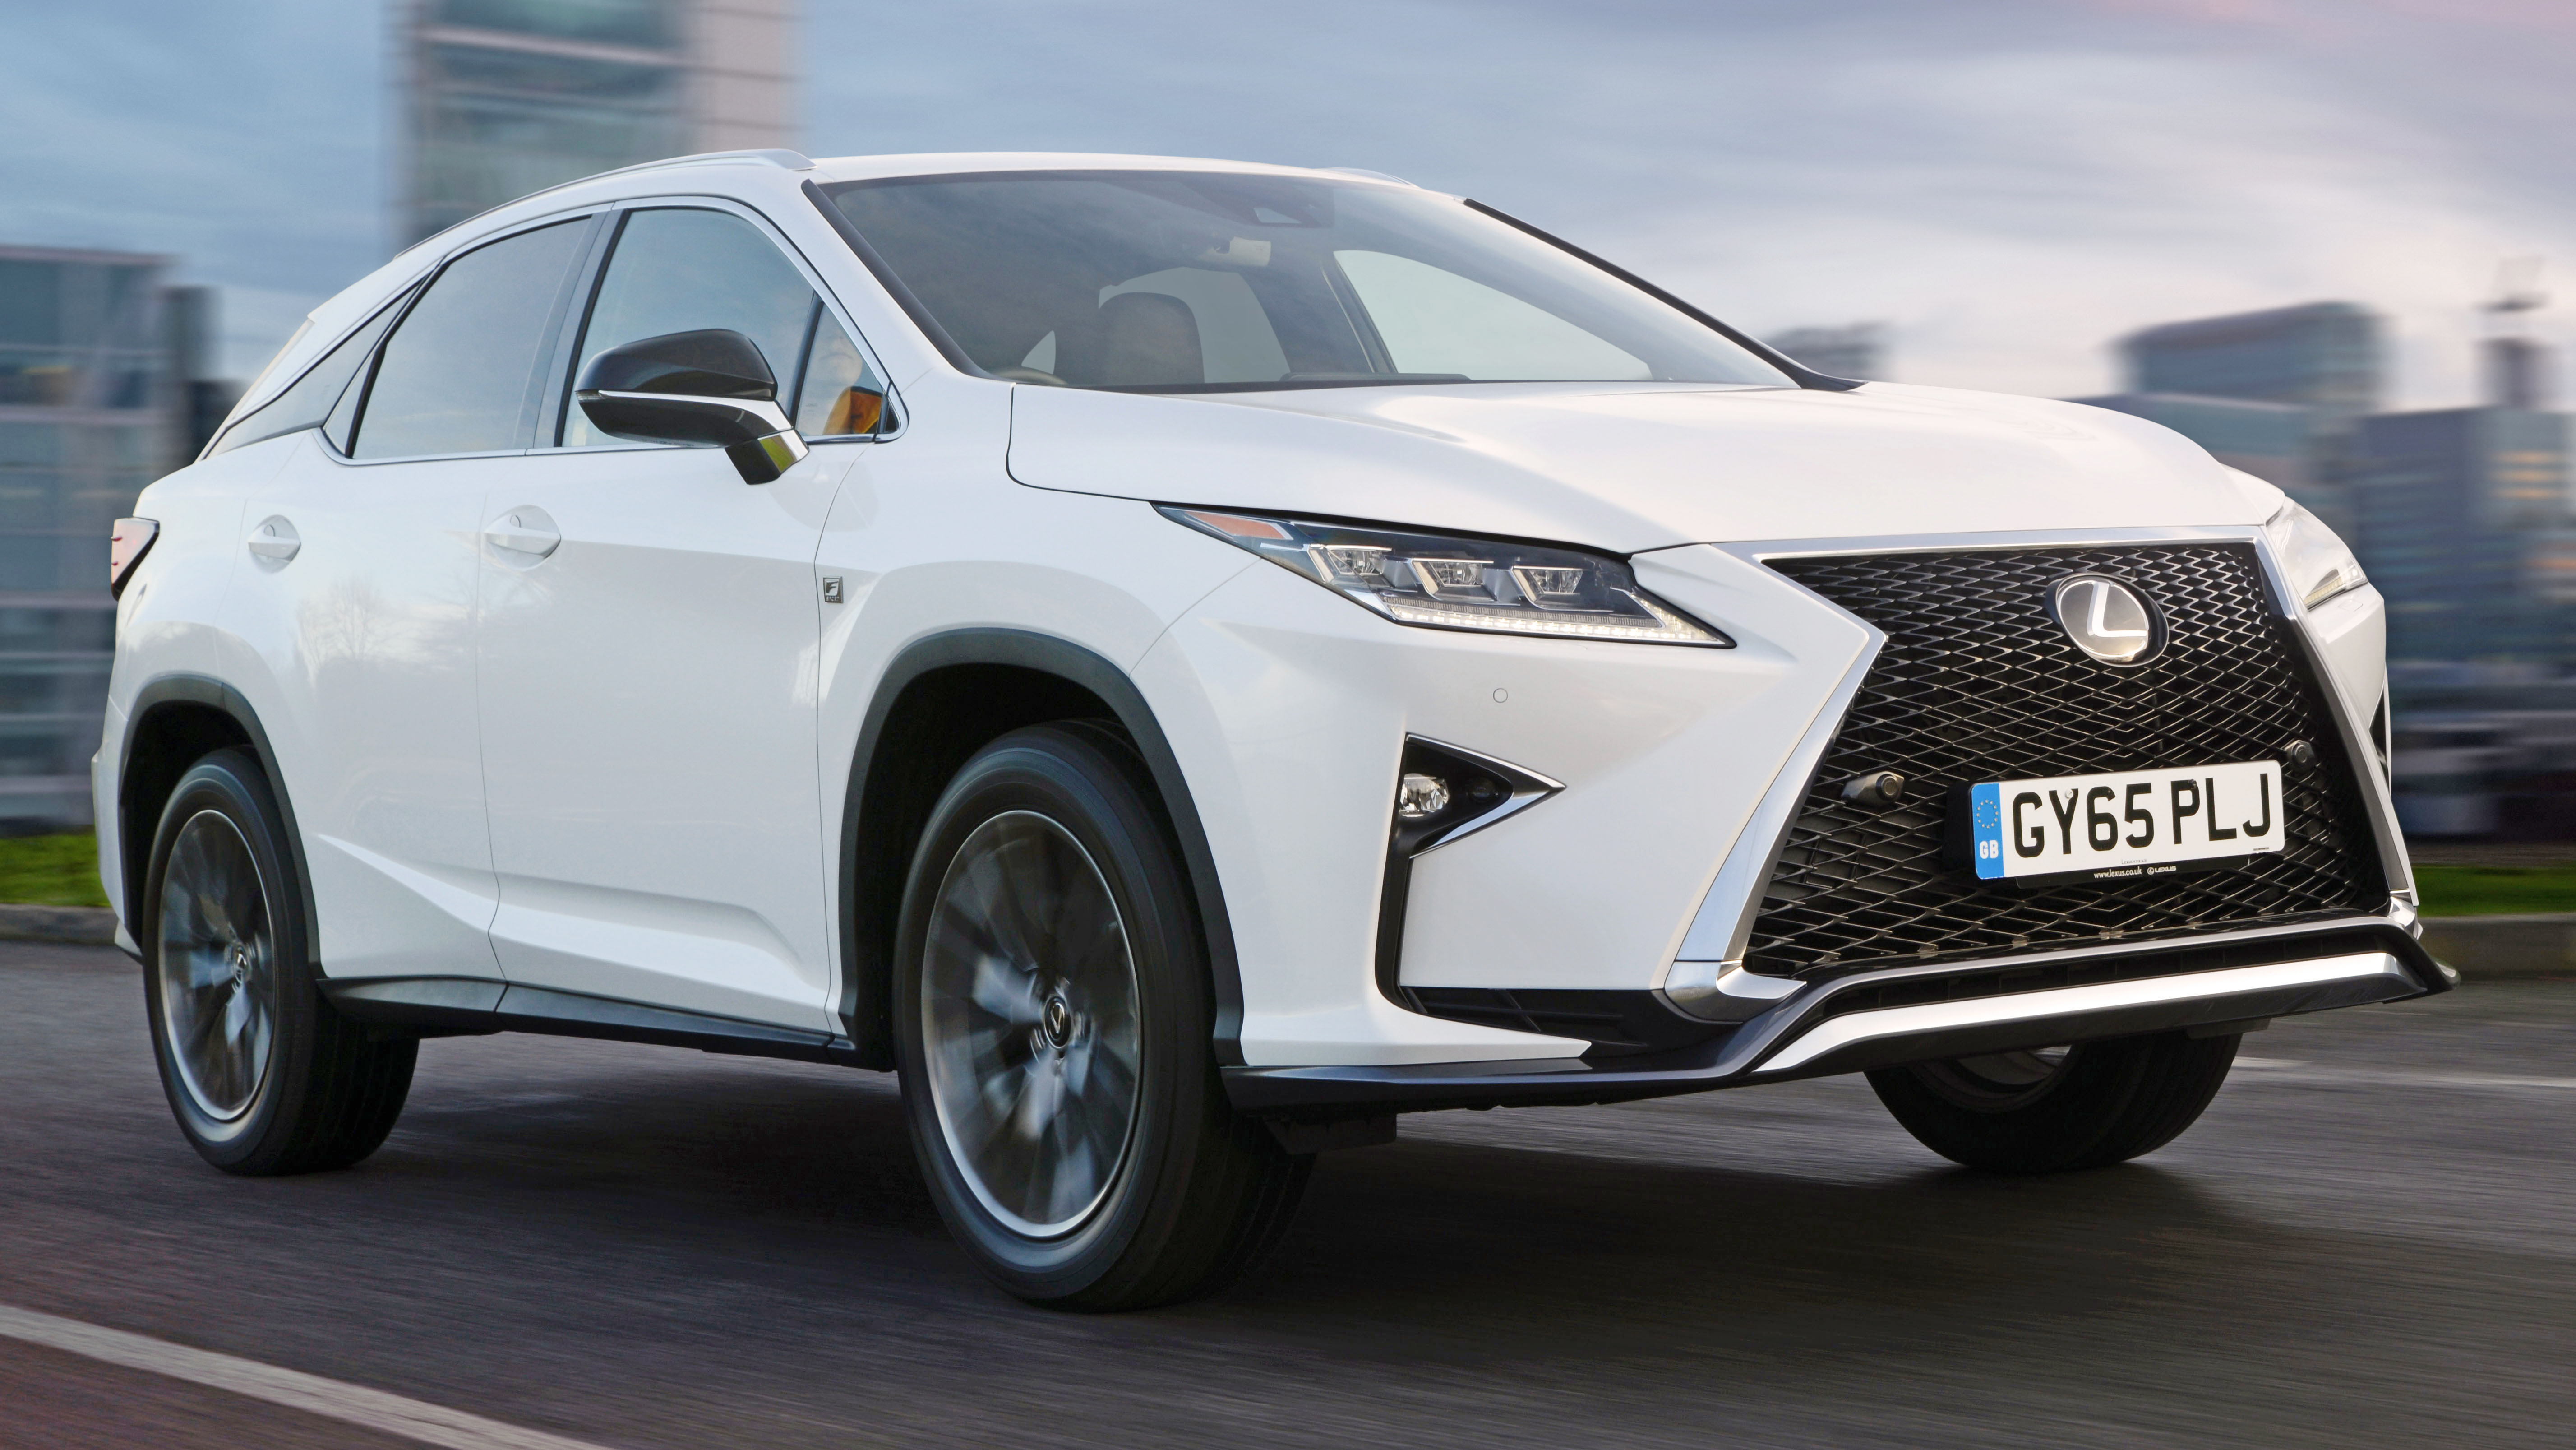 news rx utility flexibility offers functionality comfort lexus auto and hybrid